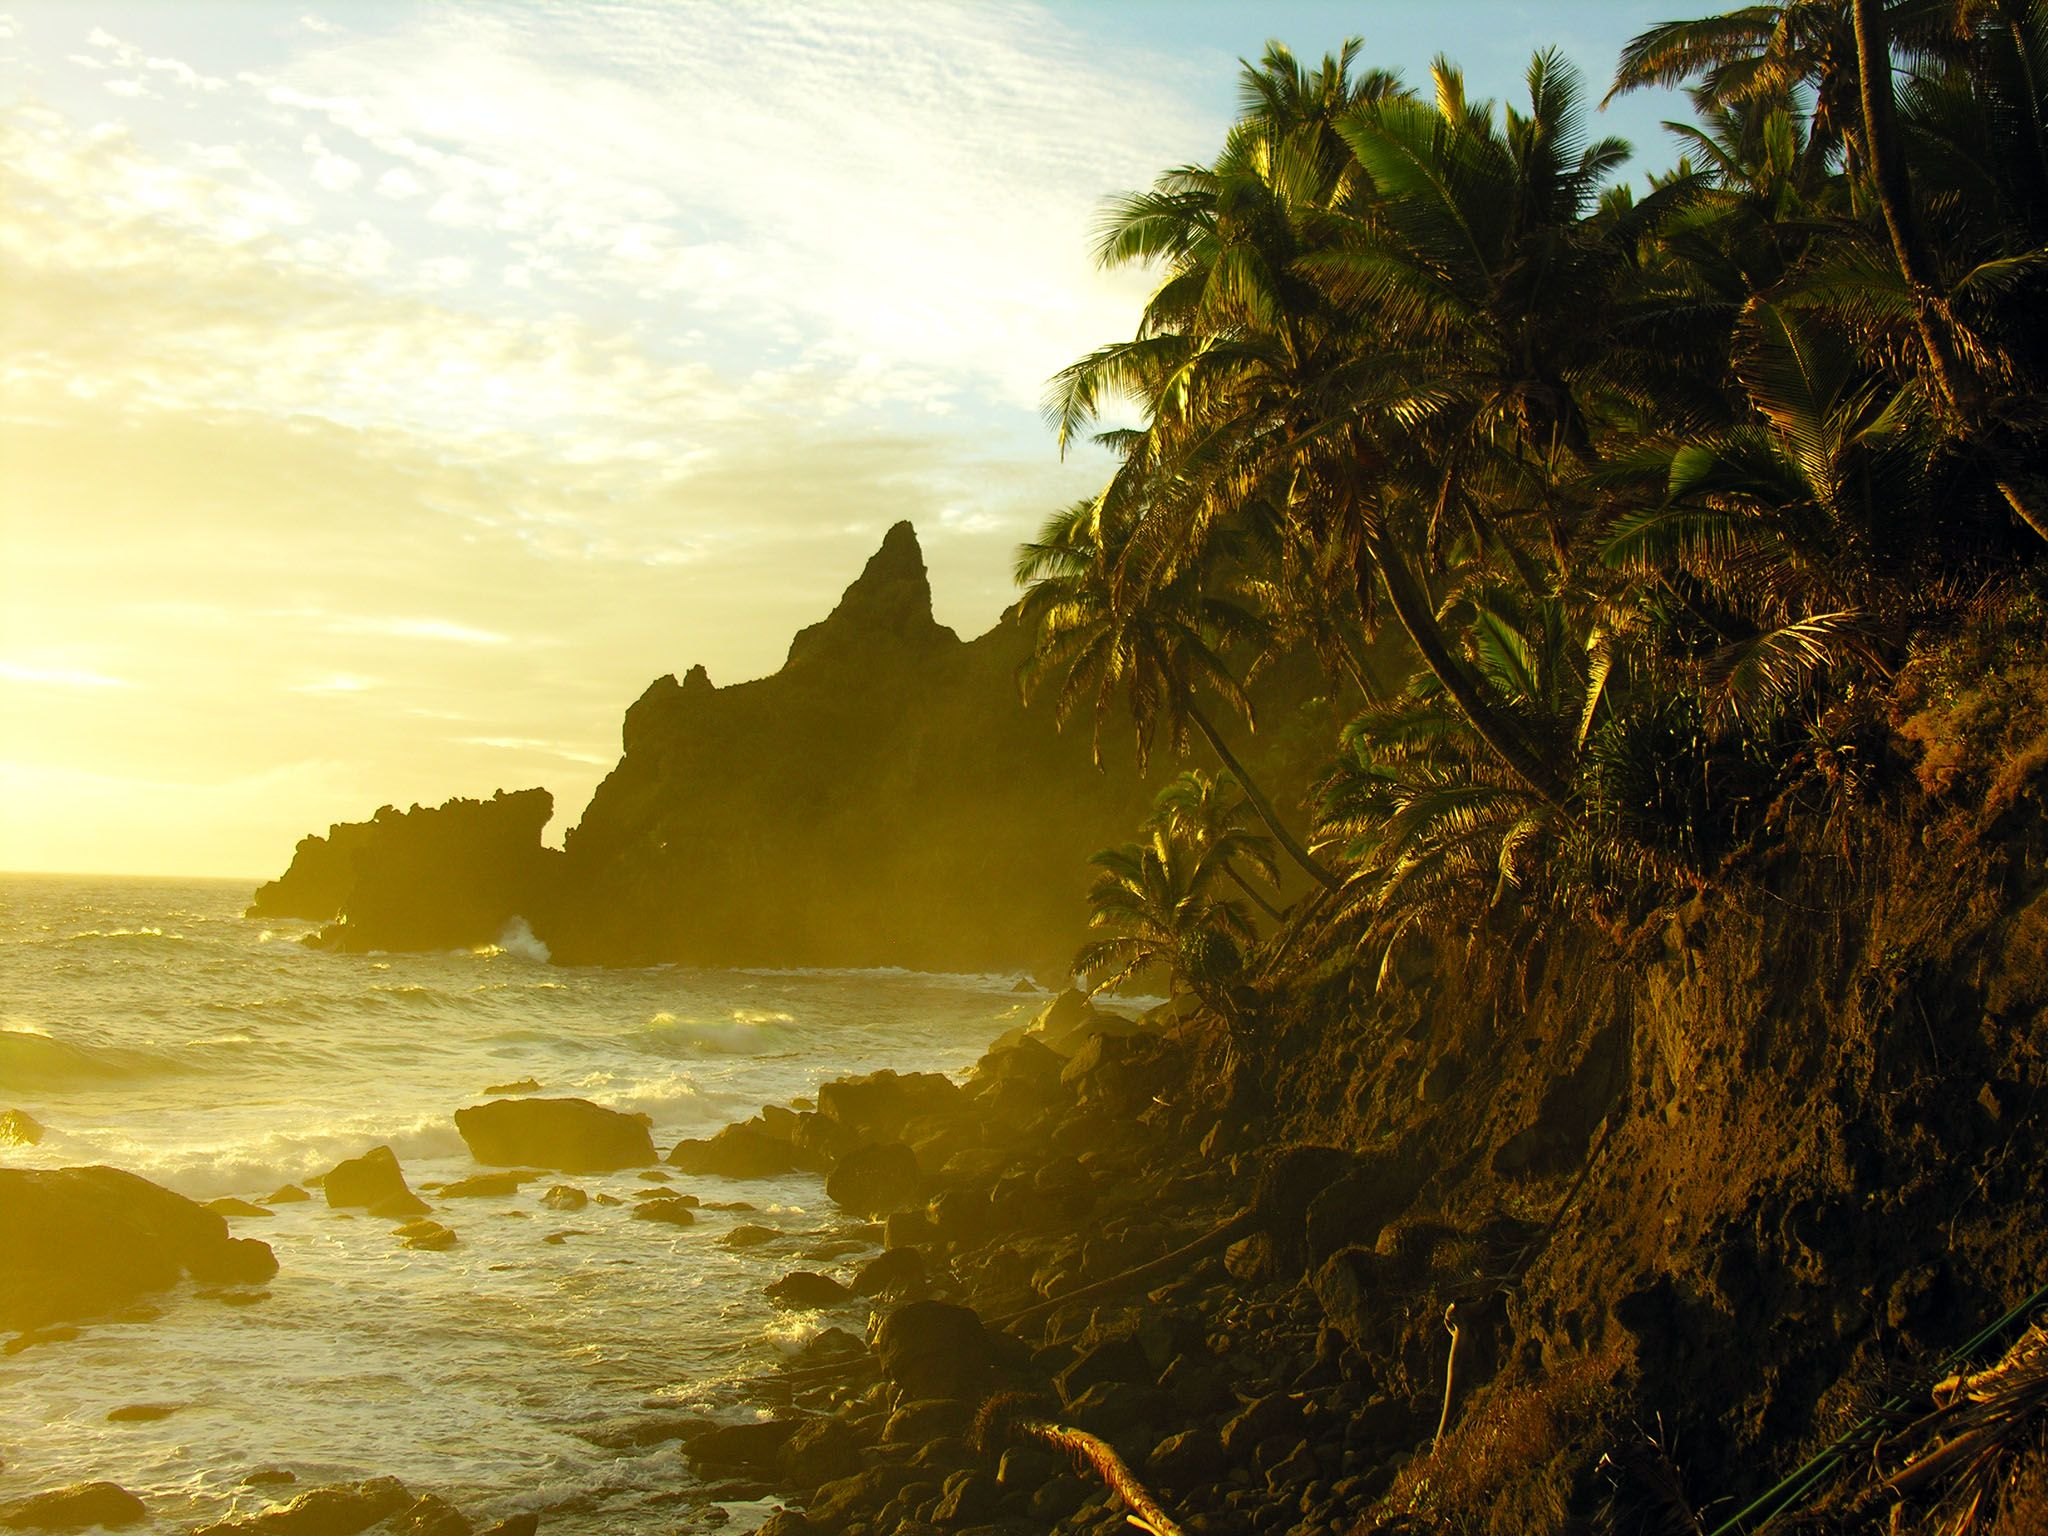 Pitcairn Island, Pitcairn Islands: The sunrise blazes over the cliffs and tropical trees of... [Photo of the day - October 2015]